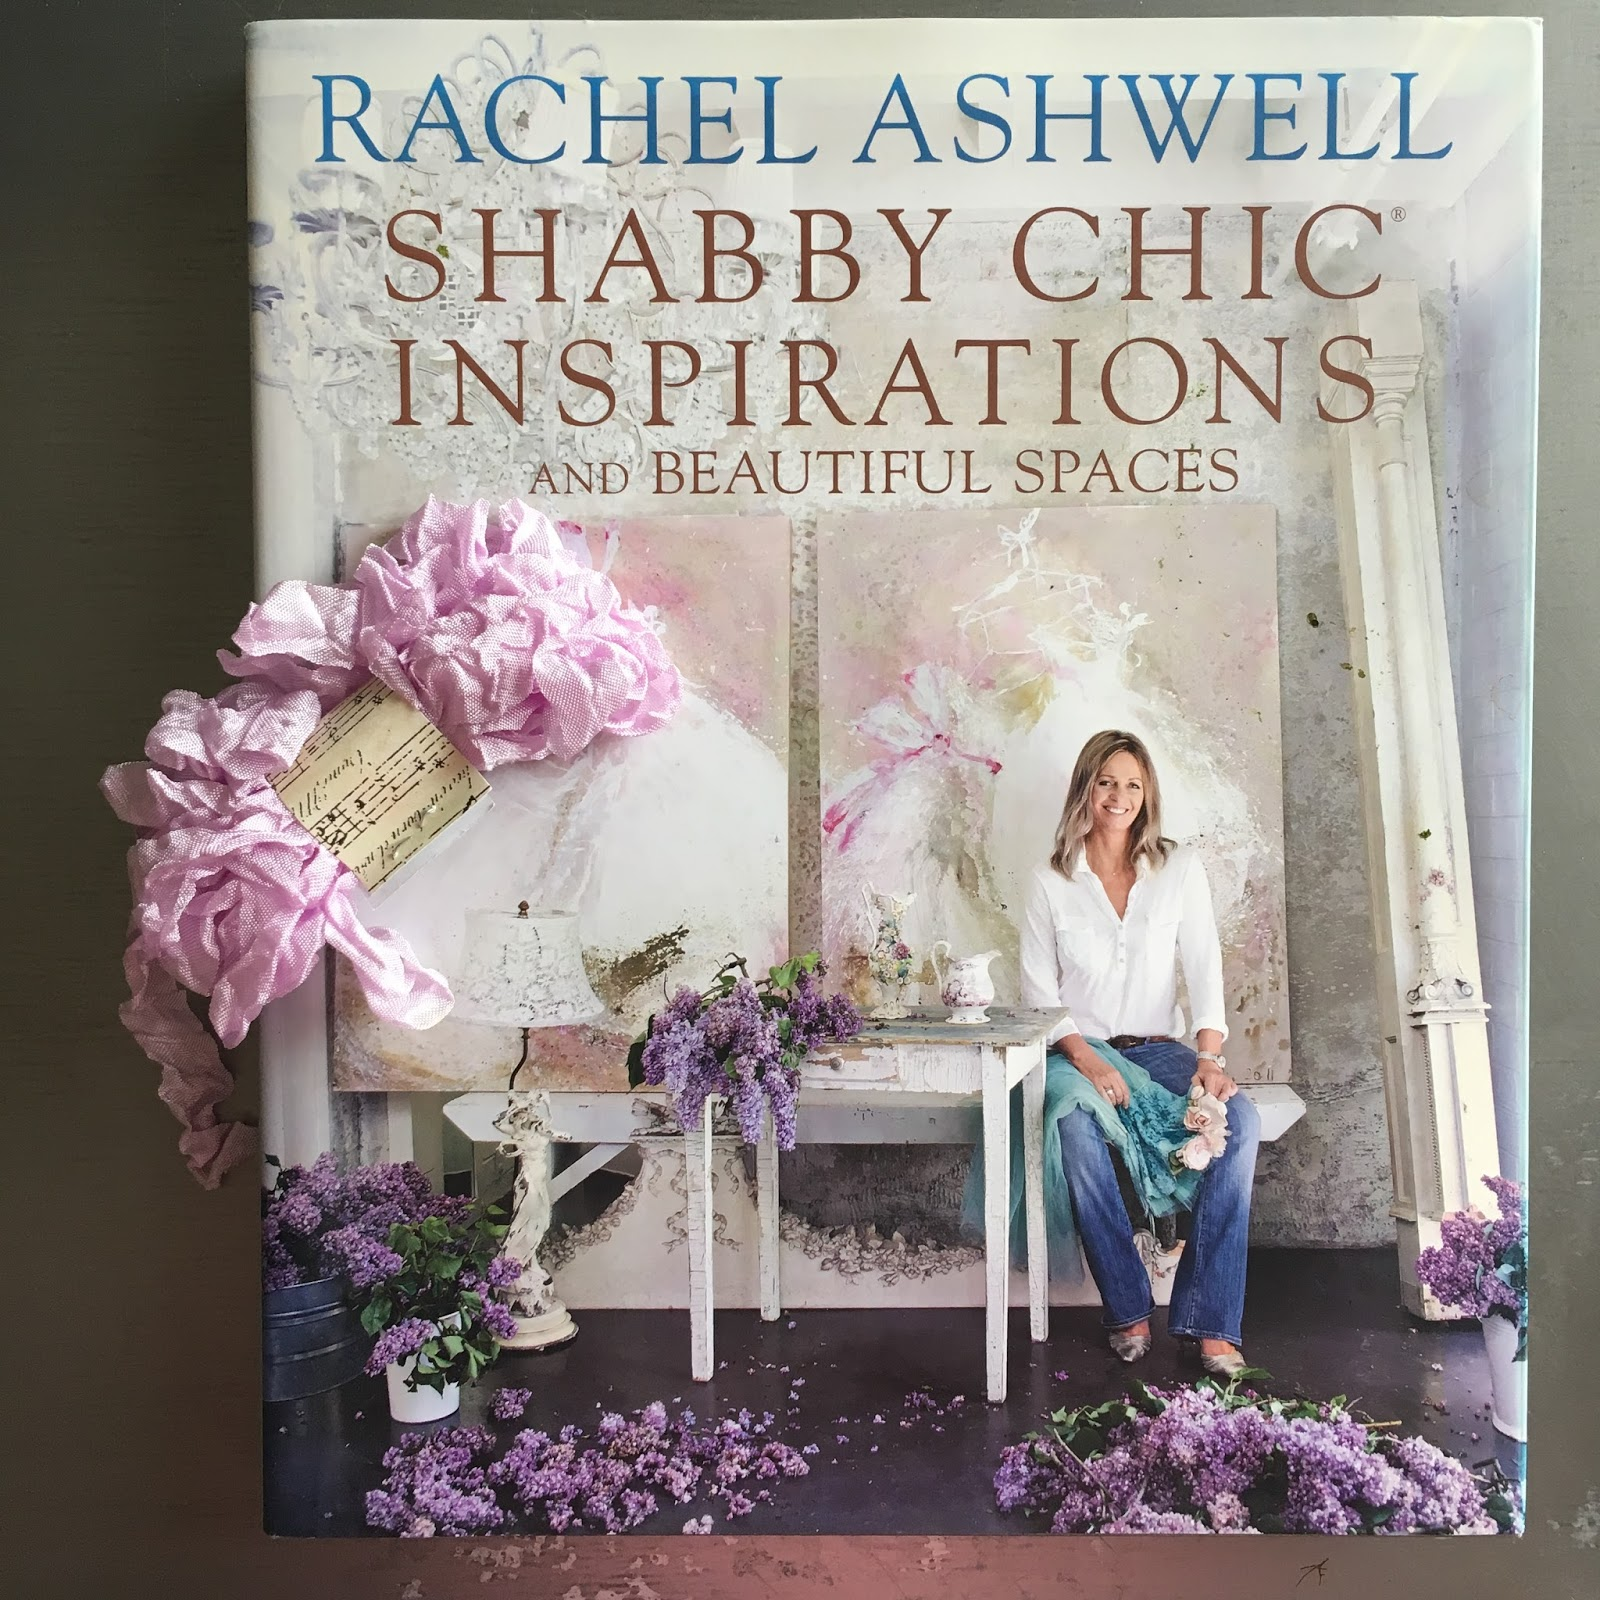 The Sketchy Reader Rachel Ashwells Shabby Chic Books Round Up Vintage Story Flower Rose 1 Inspirations And Beautiful Spaces Was Published In 2011 Of All This One Has Most Diverse Selection Homes Rooms